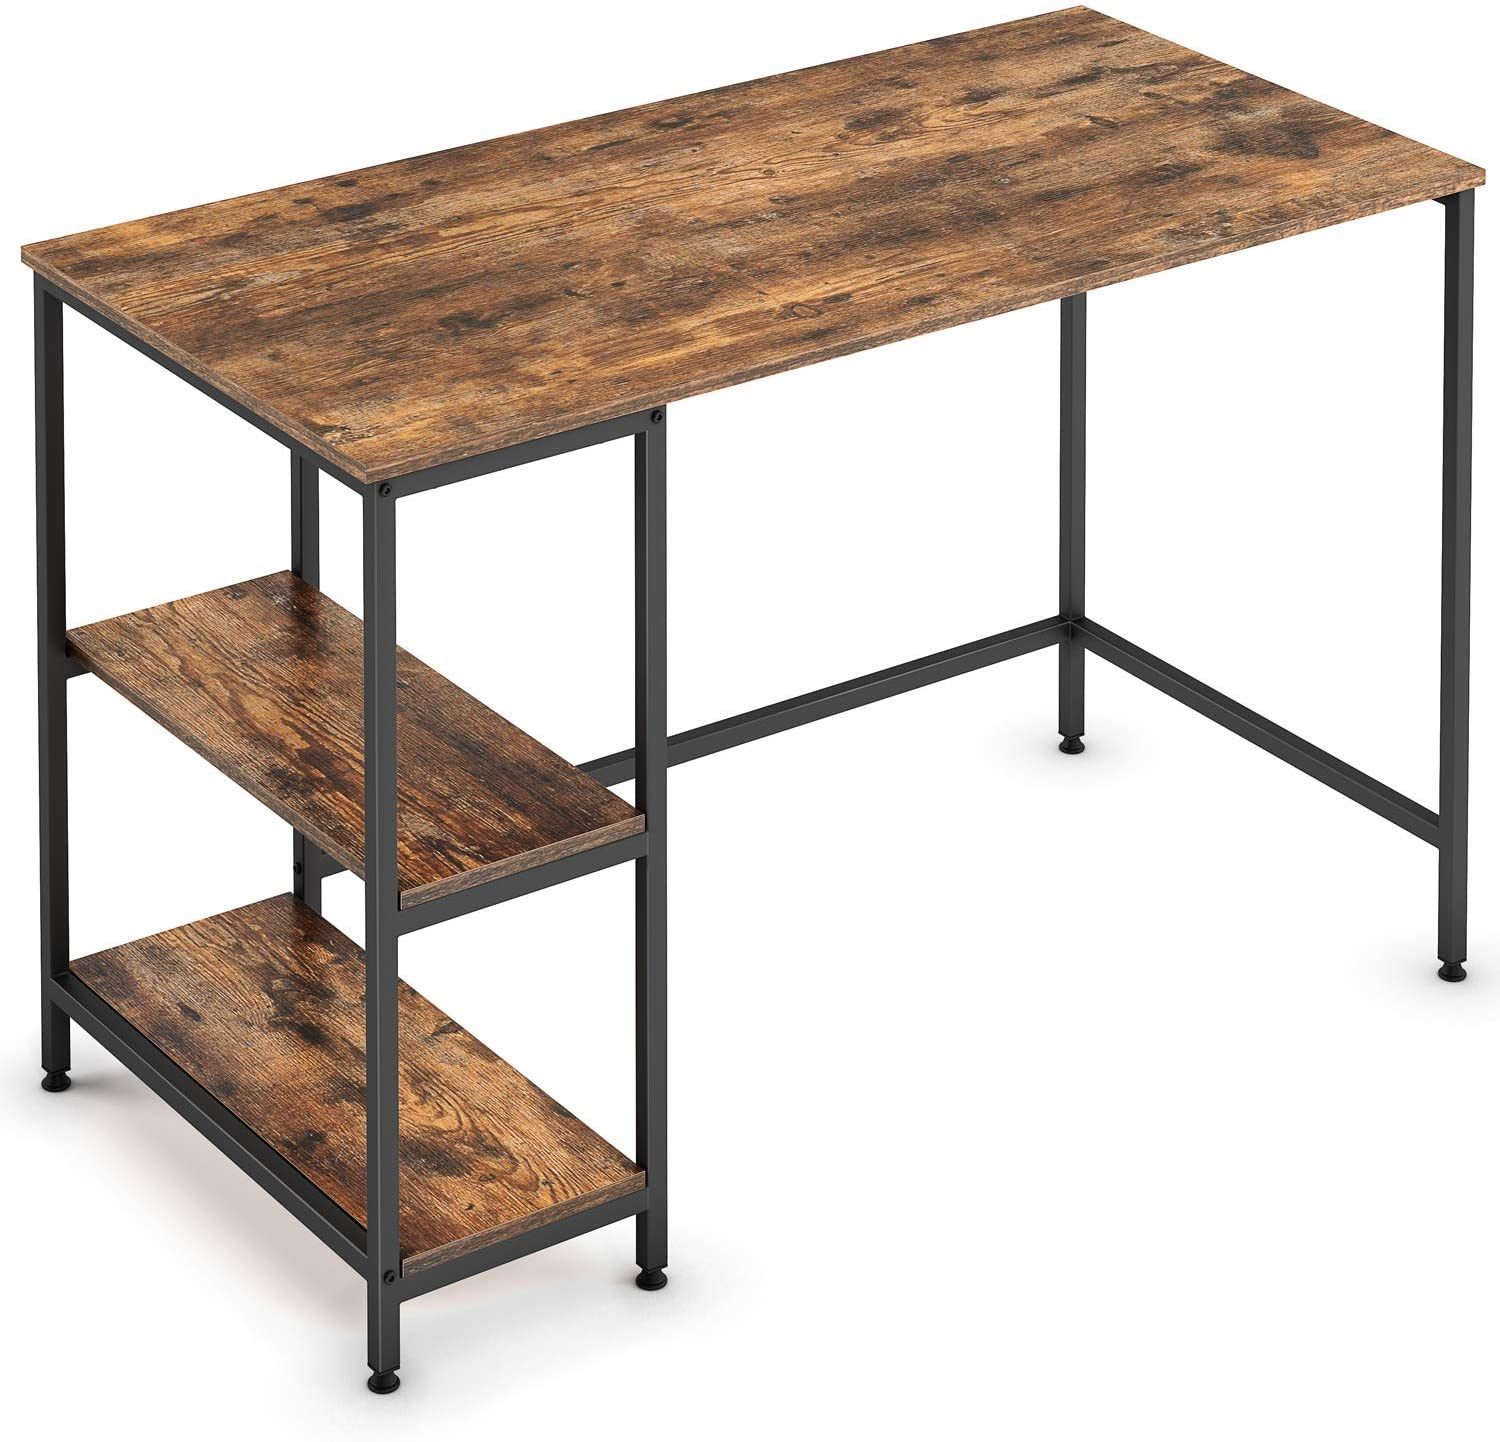 Ballucci Industrial Computer Desk, 47-Inch Study Desk, Writing and Reading Table with 2 Storage Shelves for Home Office, Workspace, Black Metal Frame